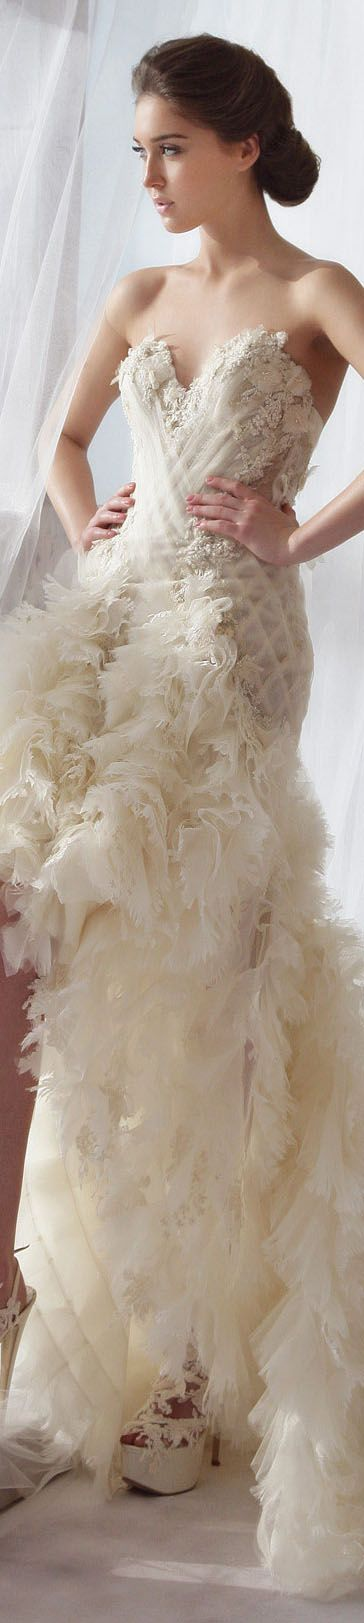 247 best images about ziad nakad on pinterest couture for Ziad nakad wedding dresses prices